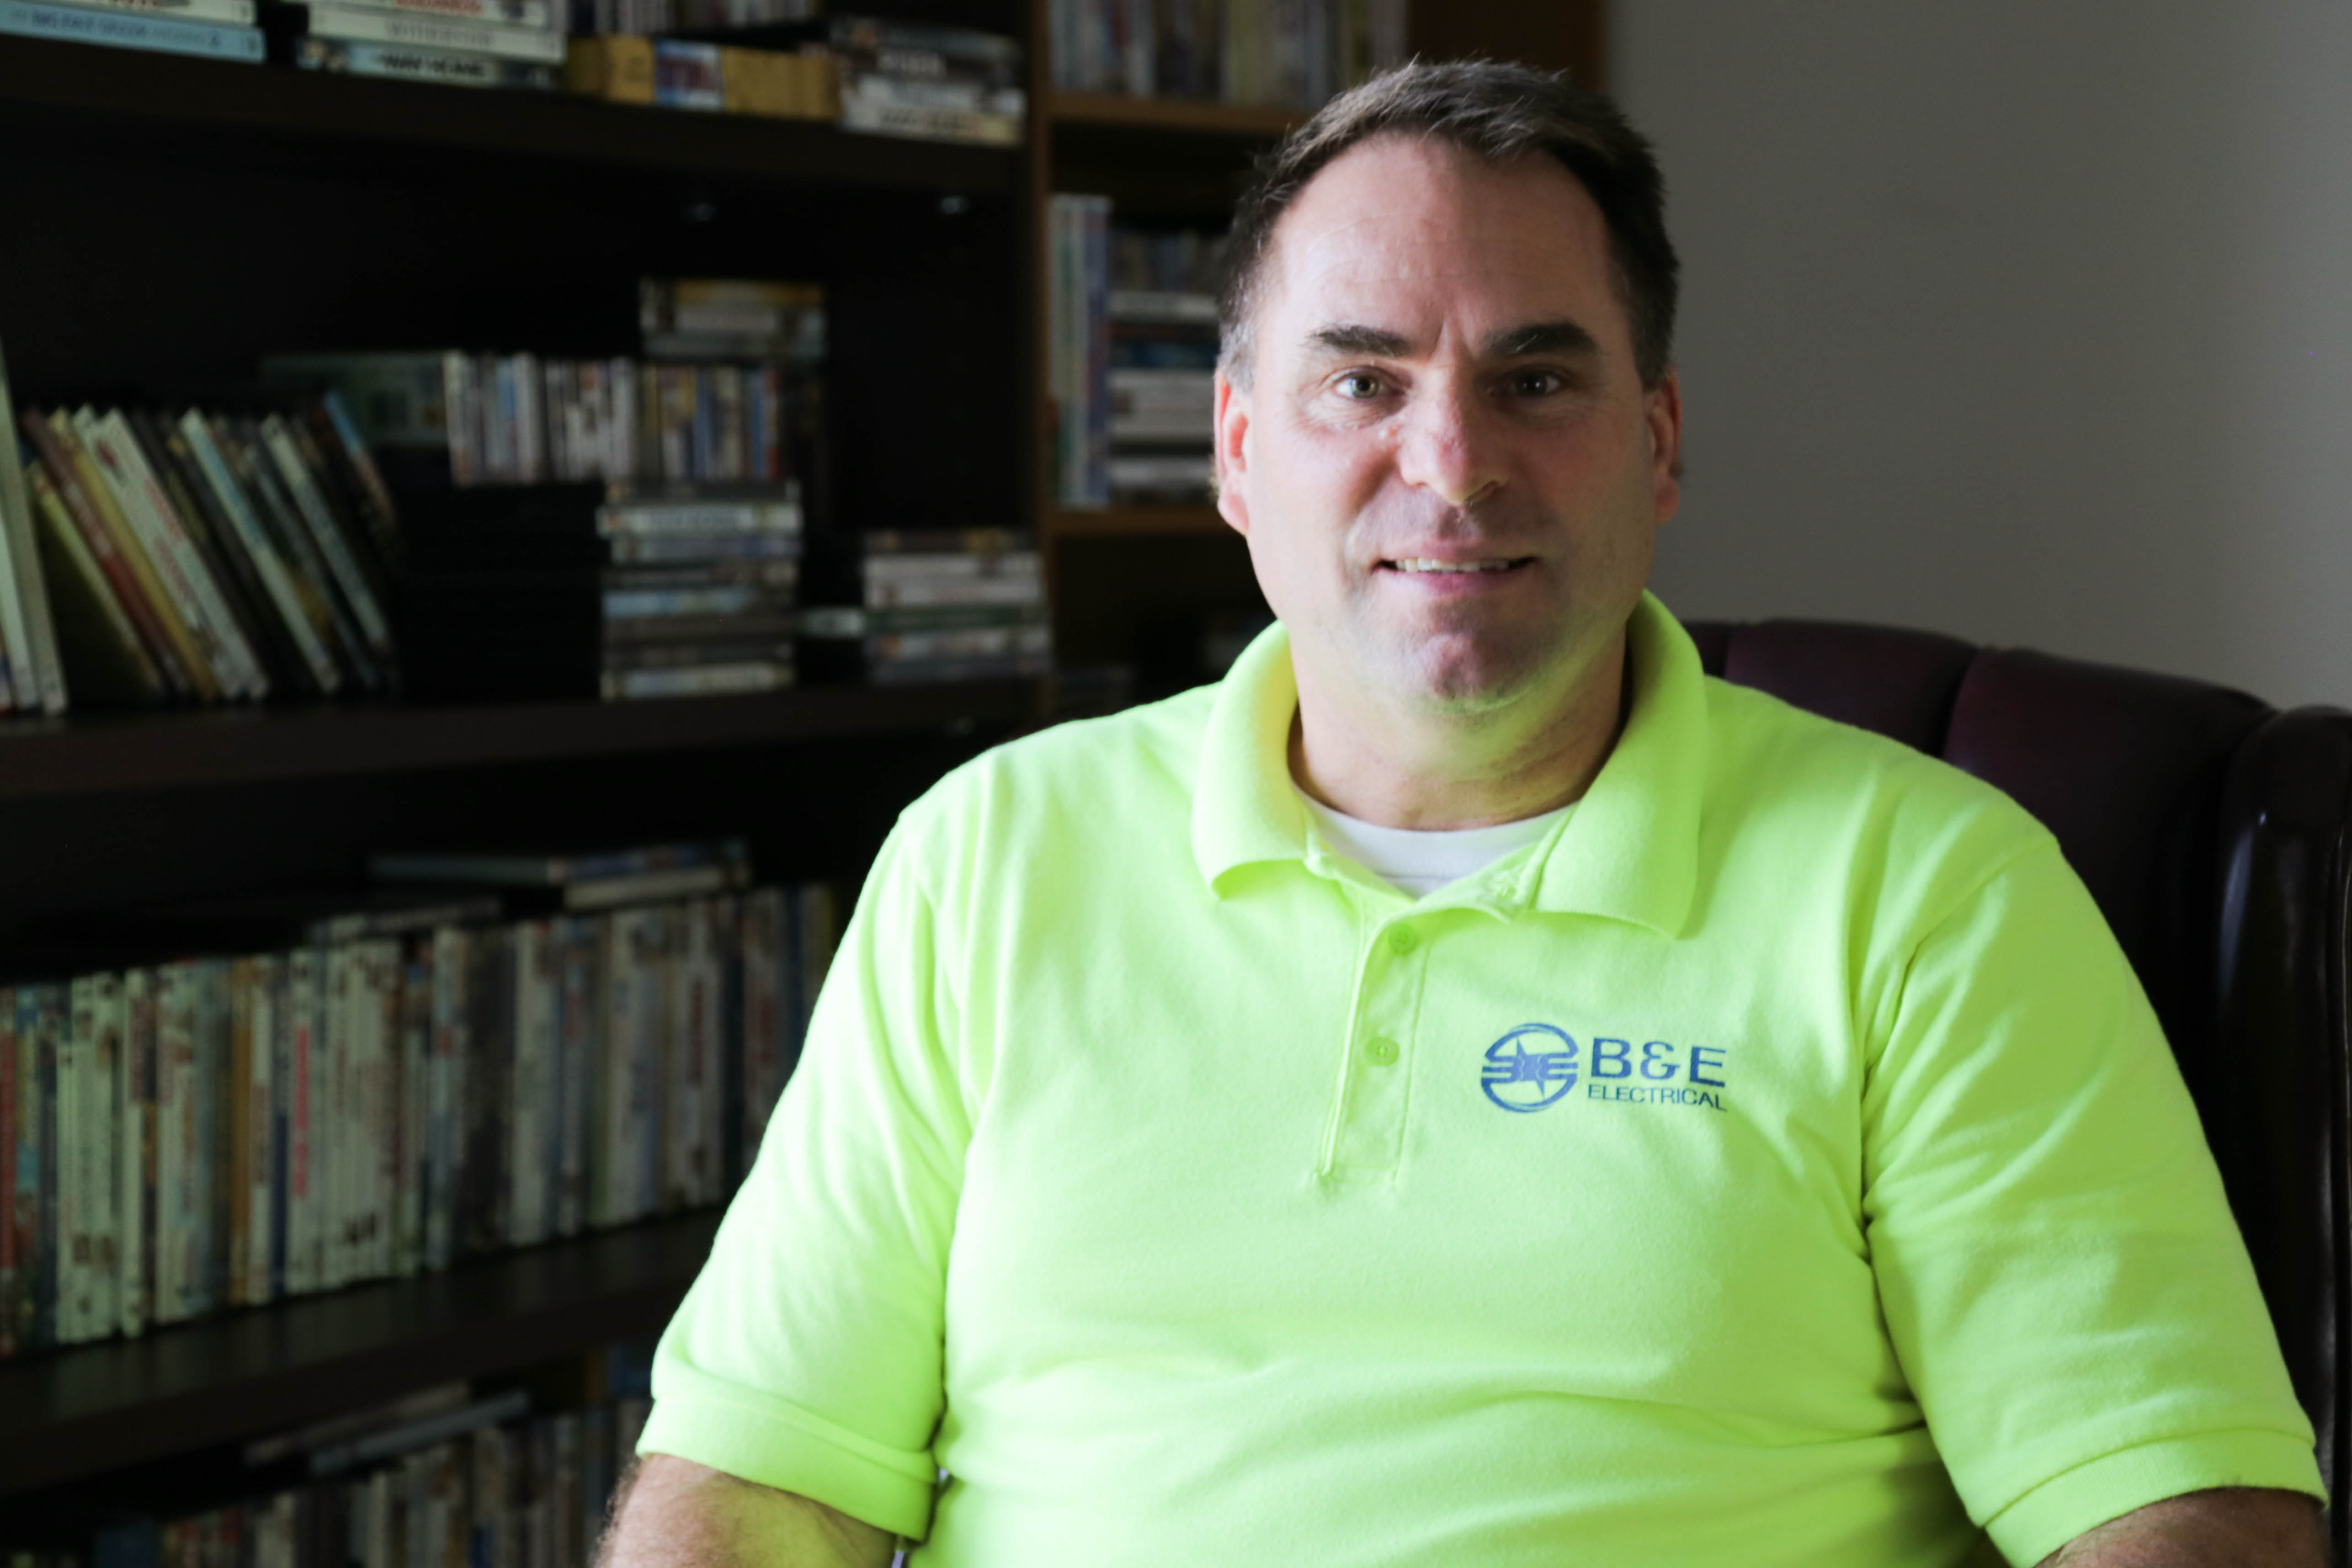 Ted Pappenfus | B&E Electrical